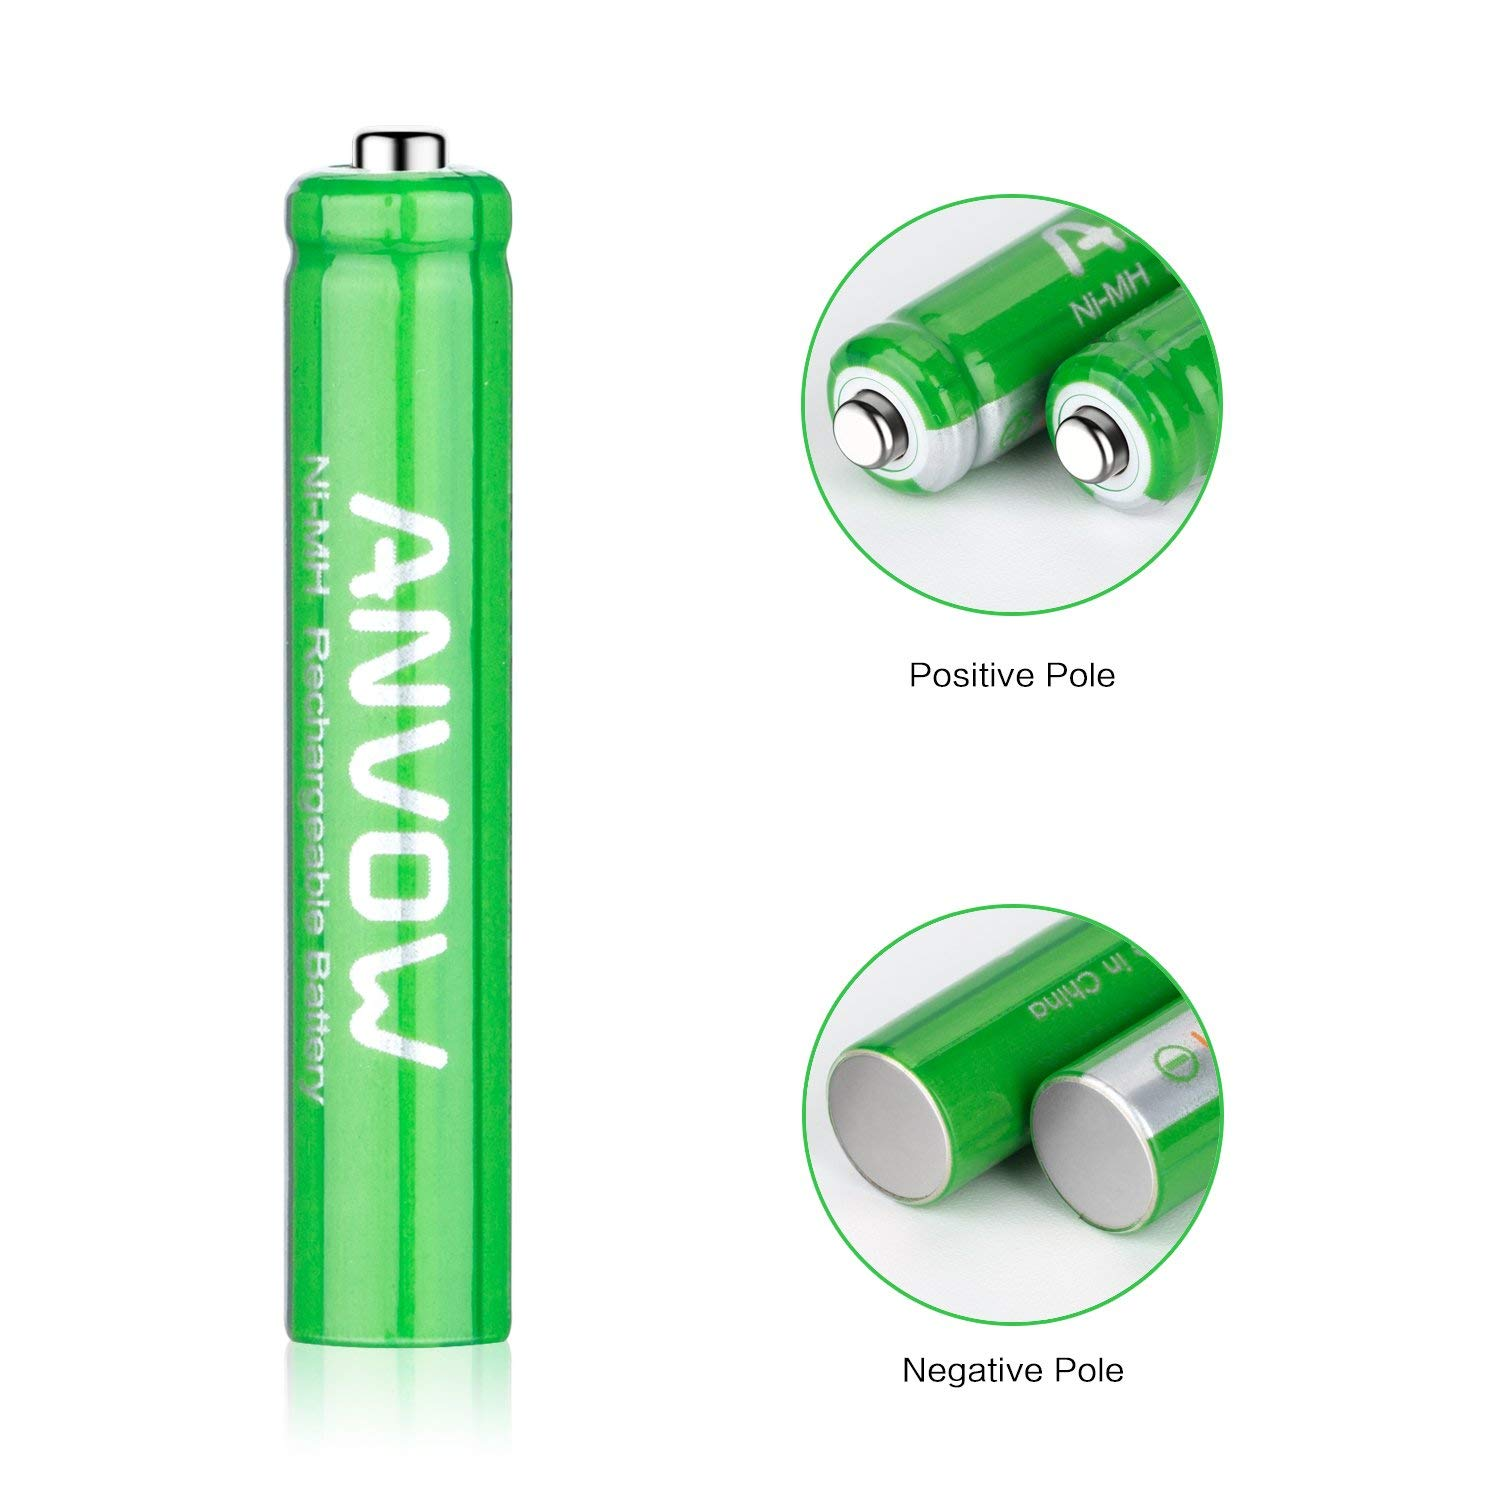 AAAA Batteries, ANVOW Rechargeable AAAA Batteries for